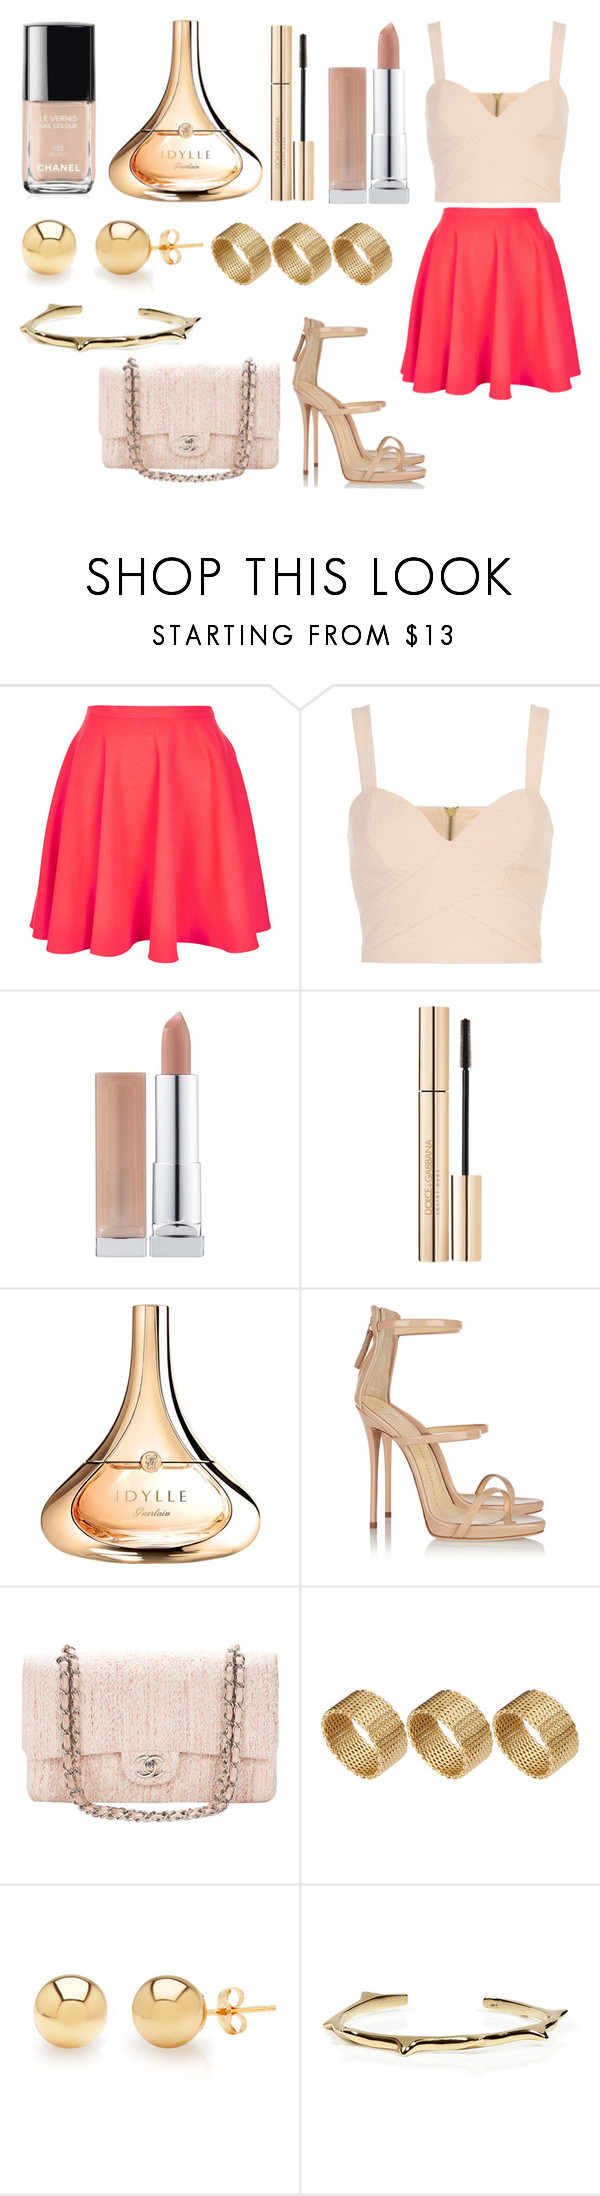 """Akgl"" by southerncomfort ❤ liked on Polyvore featuring Topshop, River Island, Dolce&Gabbana, Guerlain, Giuseppe Zanotti, Chanel, ASOS, Mondevio and Mara Carrizo Scalise"